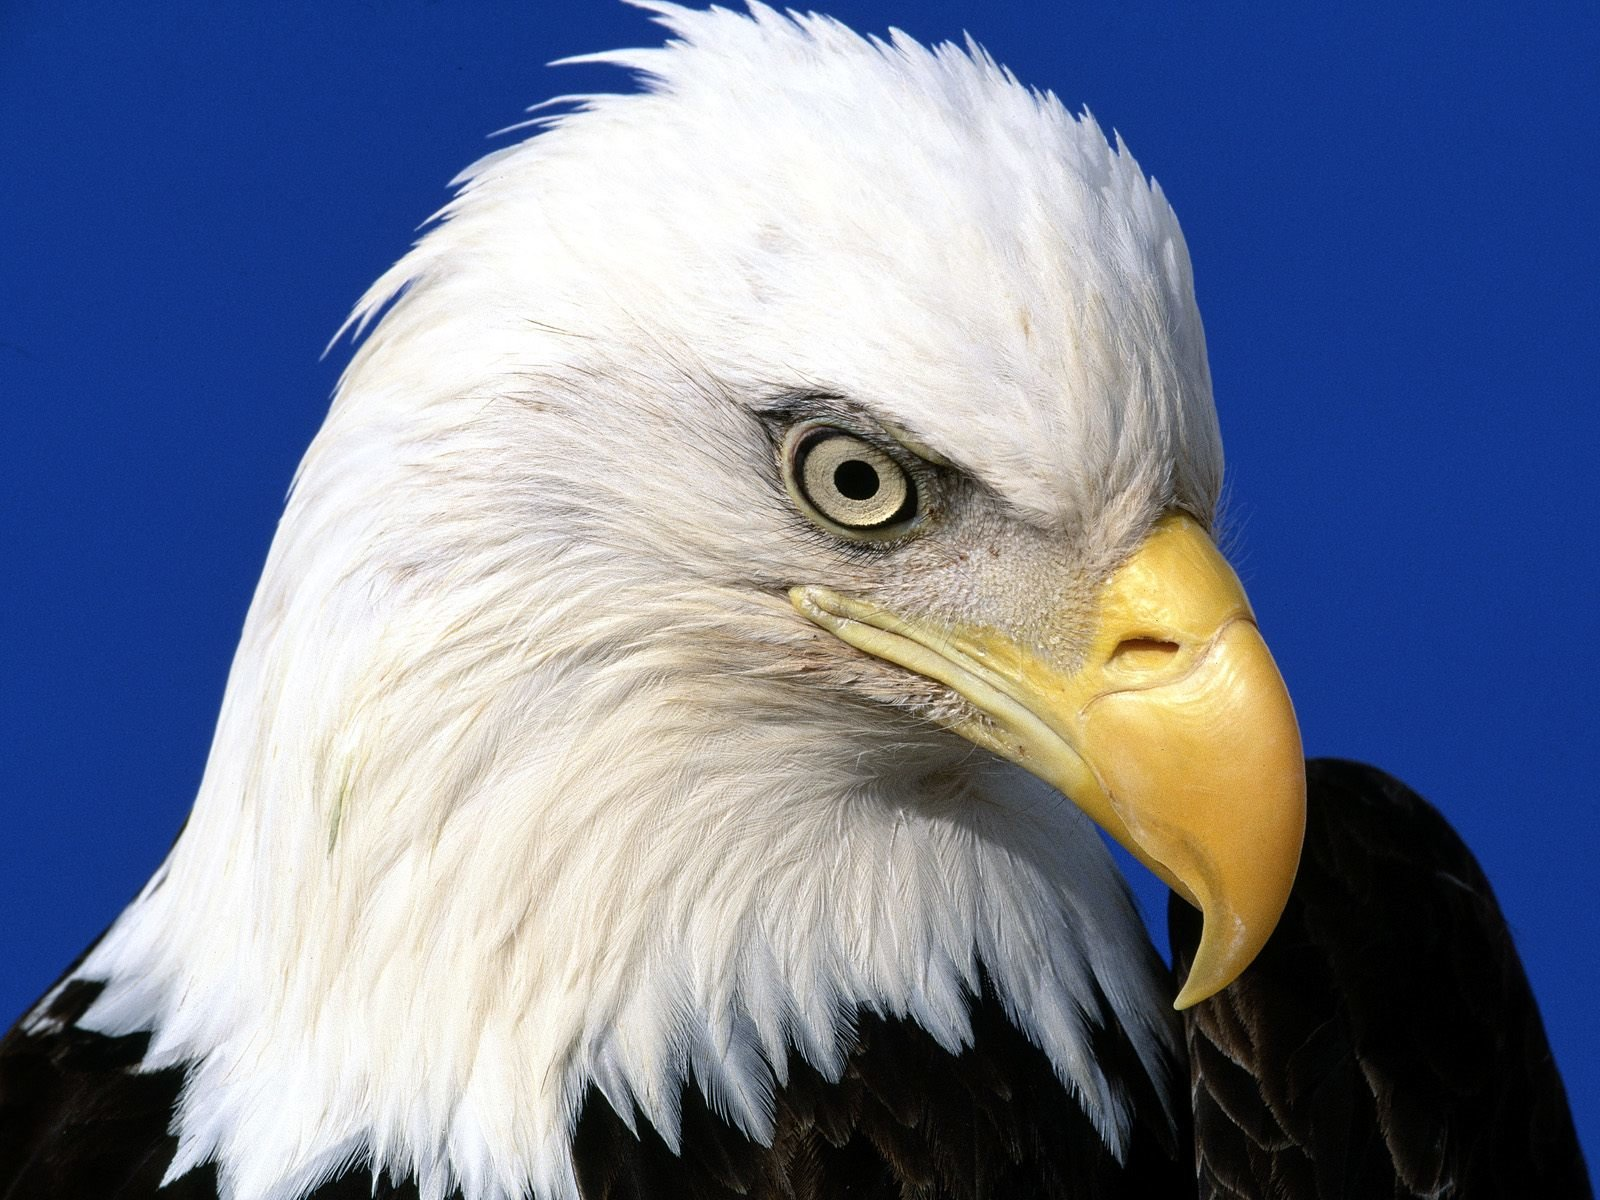 Free Eagle high quality wallpaper ID:231129 for hd 1600x1200 computer